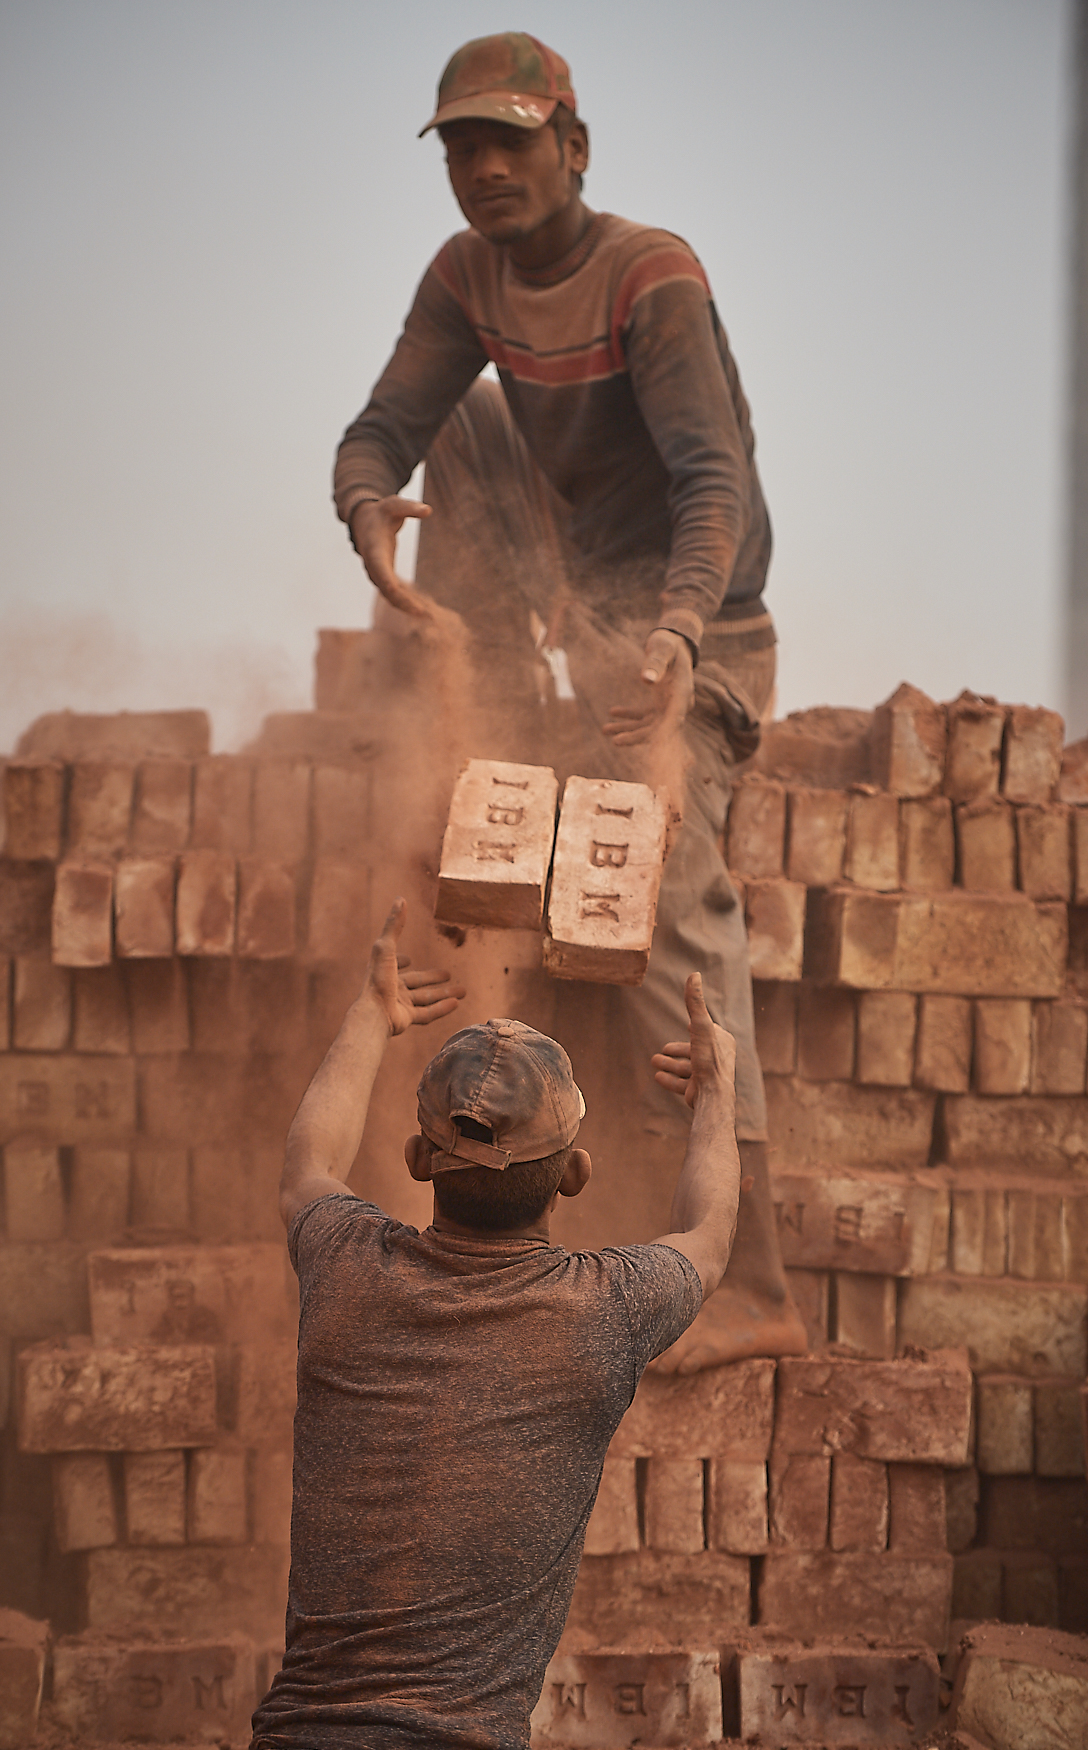 workers stacking dry bricks for baking